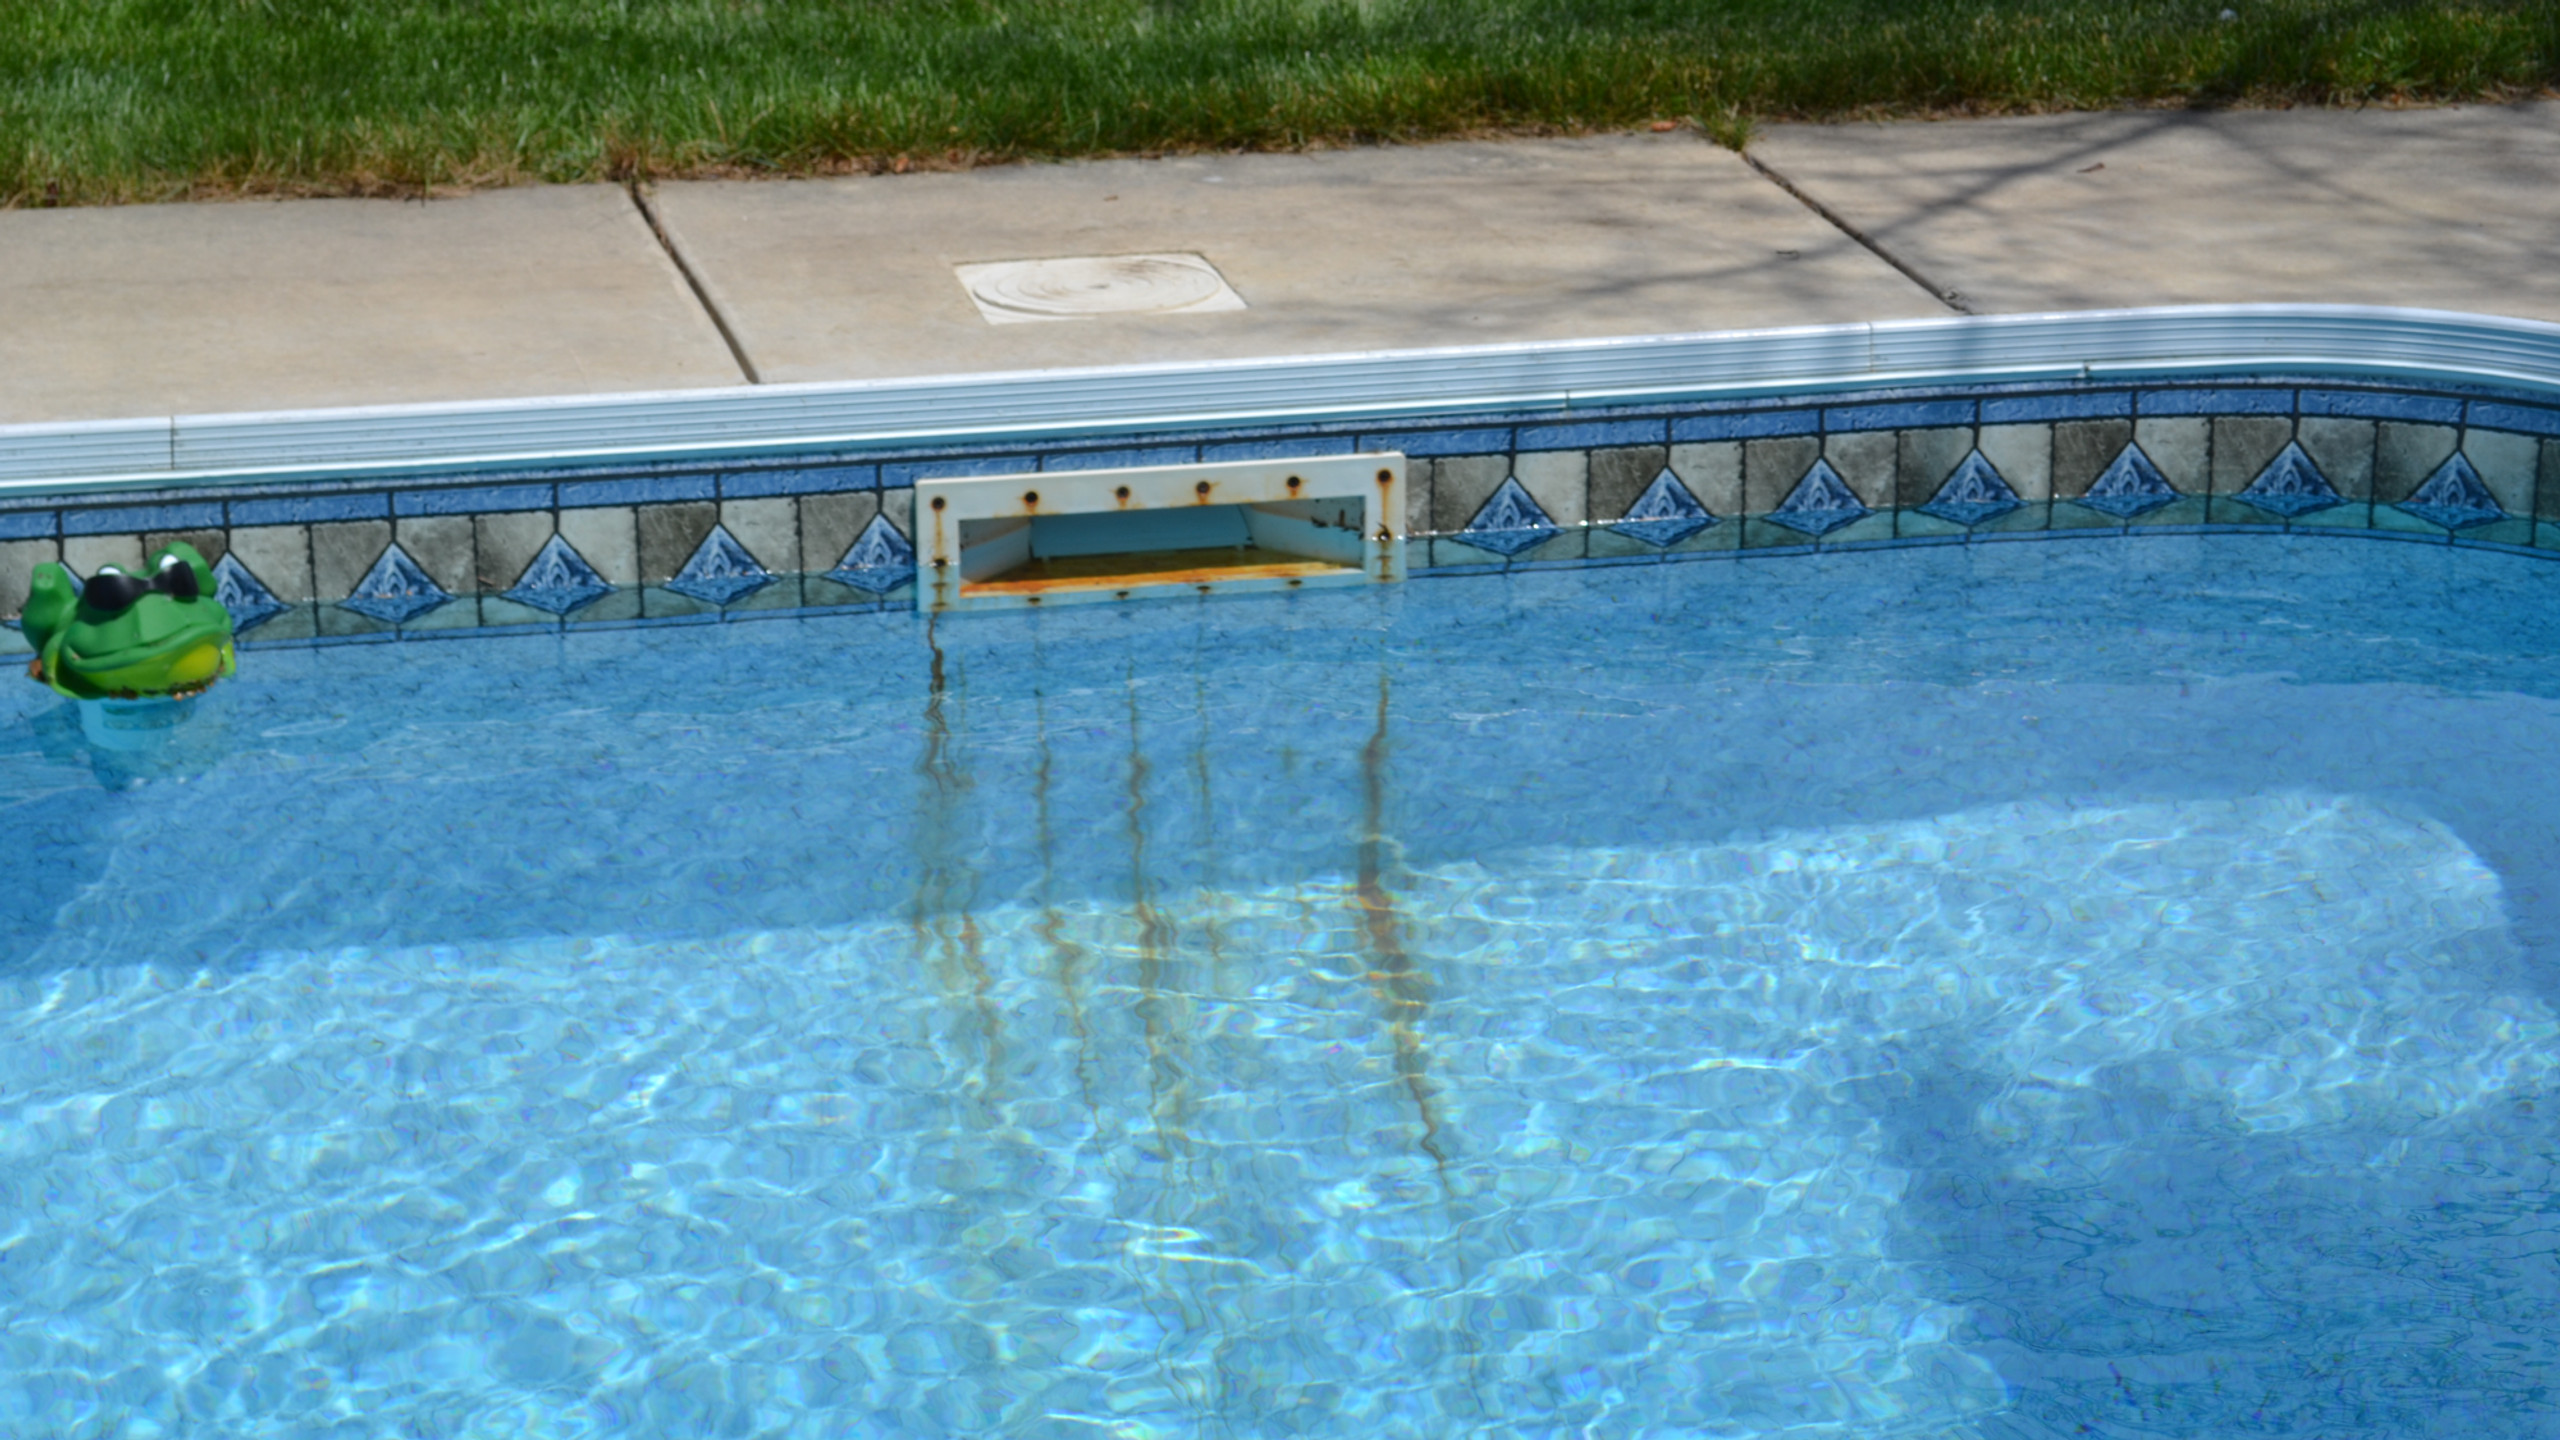 This pool is experiencing corrosion of the stainless steel skimmer screws that attach the faceplate to the skimmer in a salt water pool.